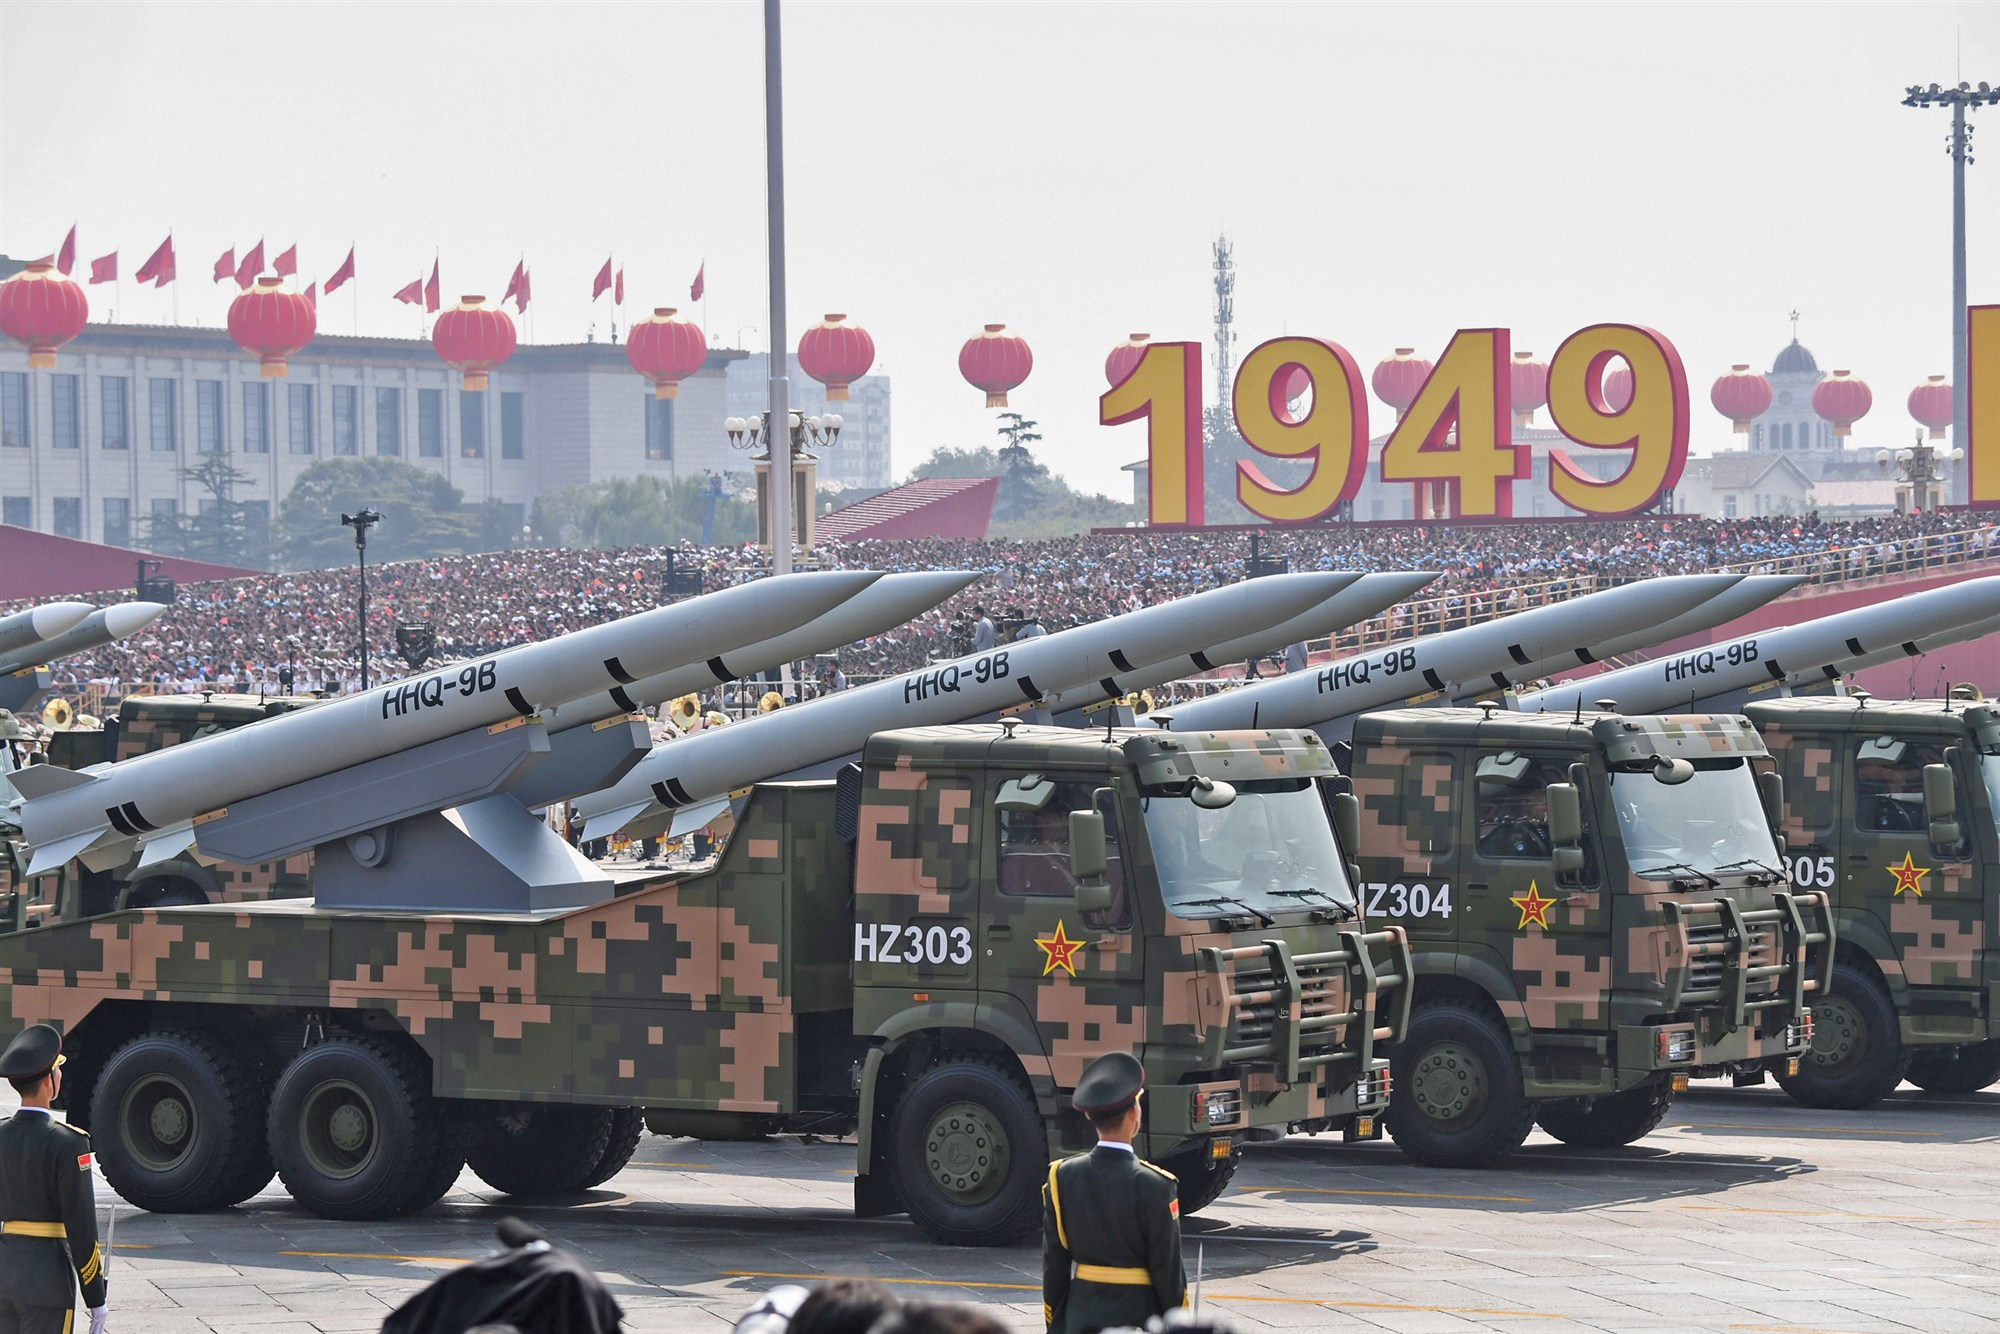 China's Growing Firepower Casts Doubt On Whether U.S. Could Defend Taiwan